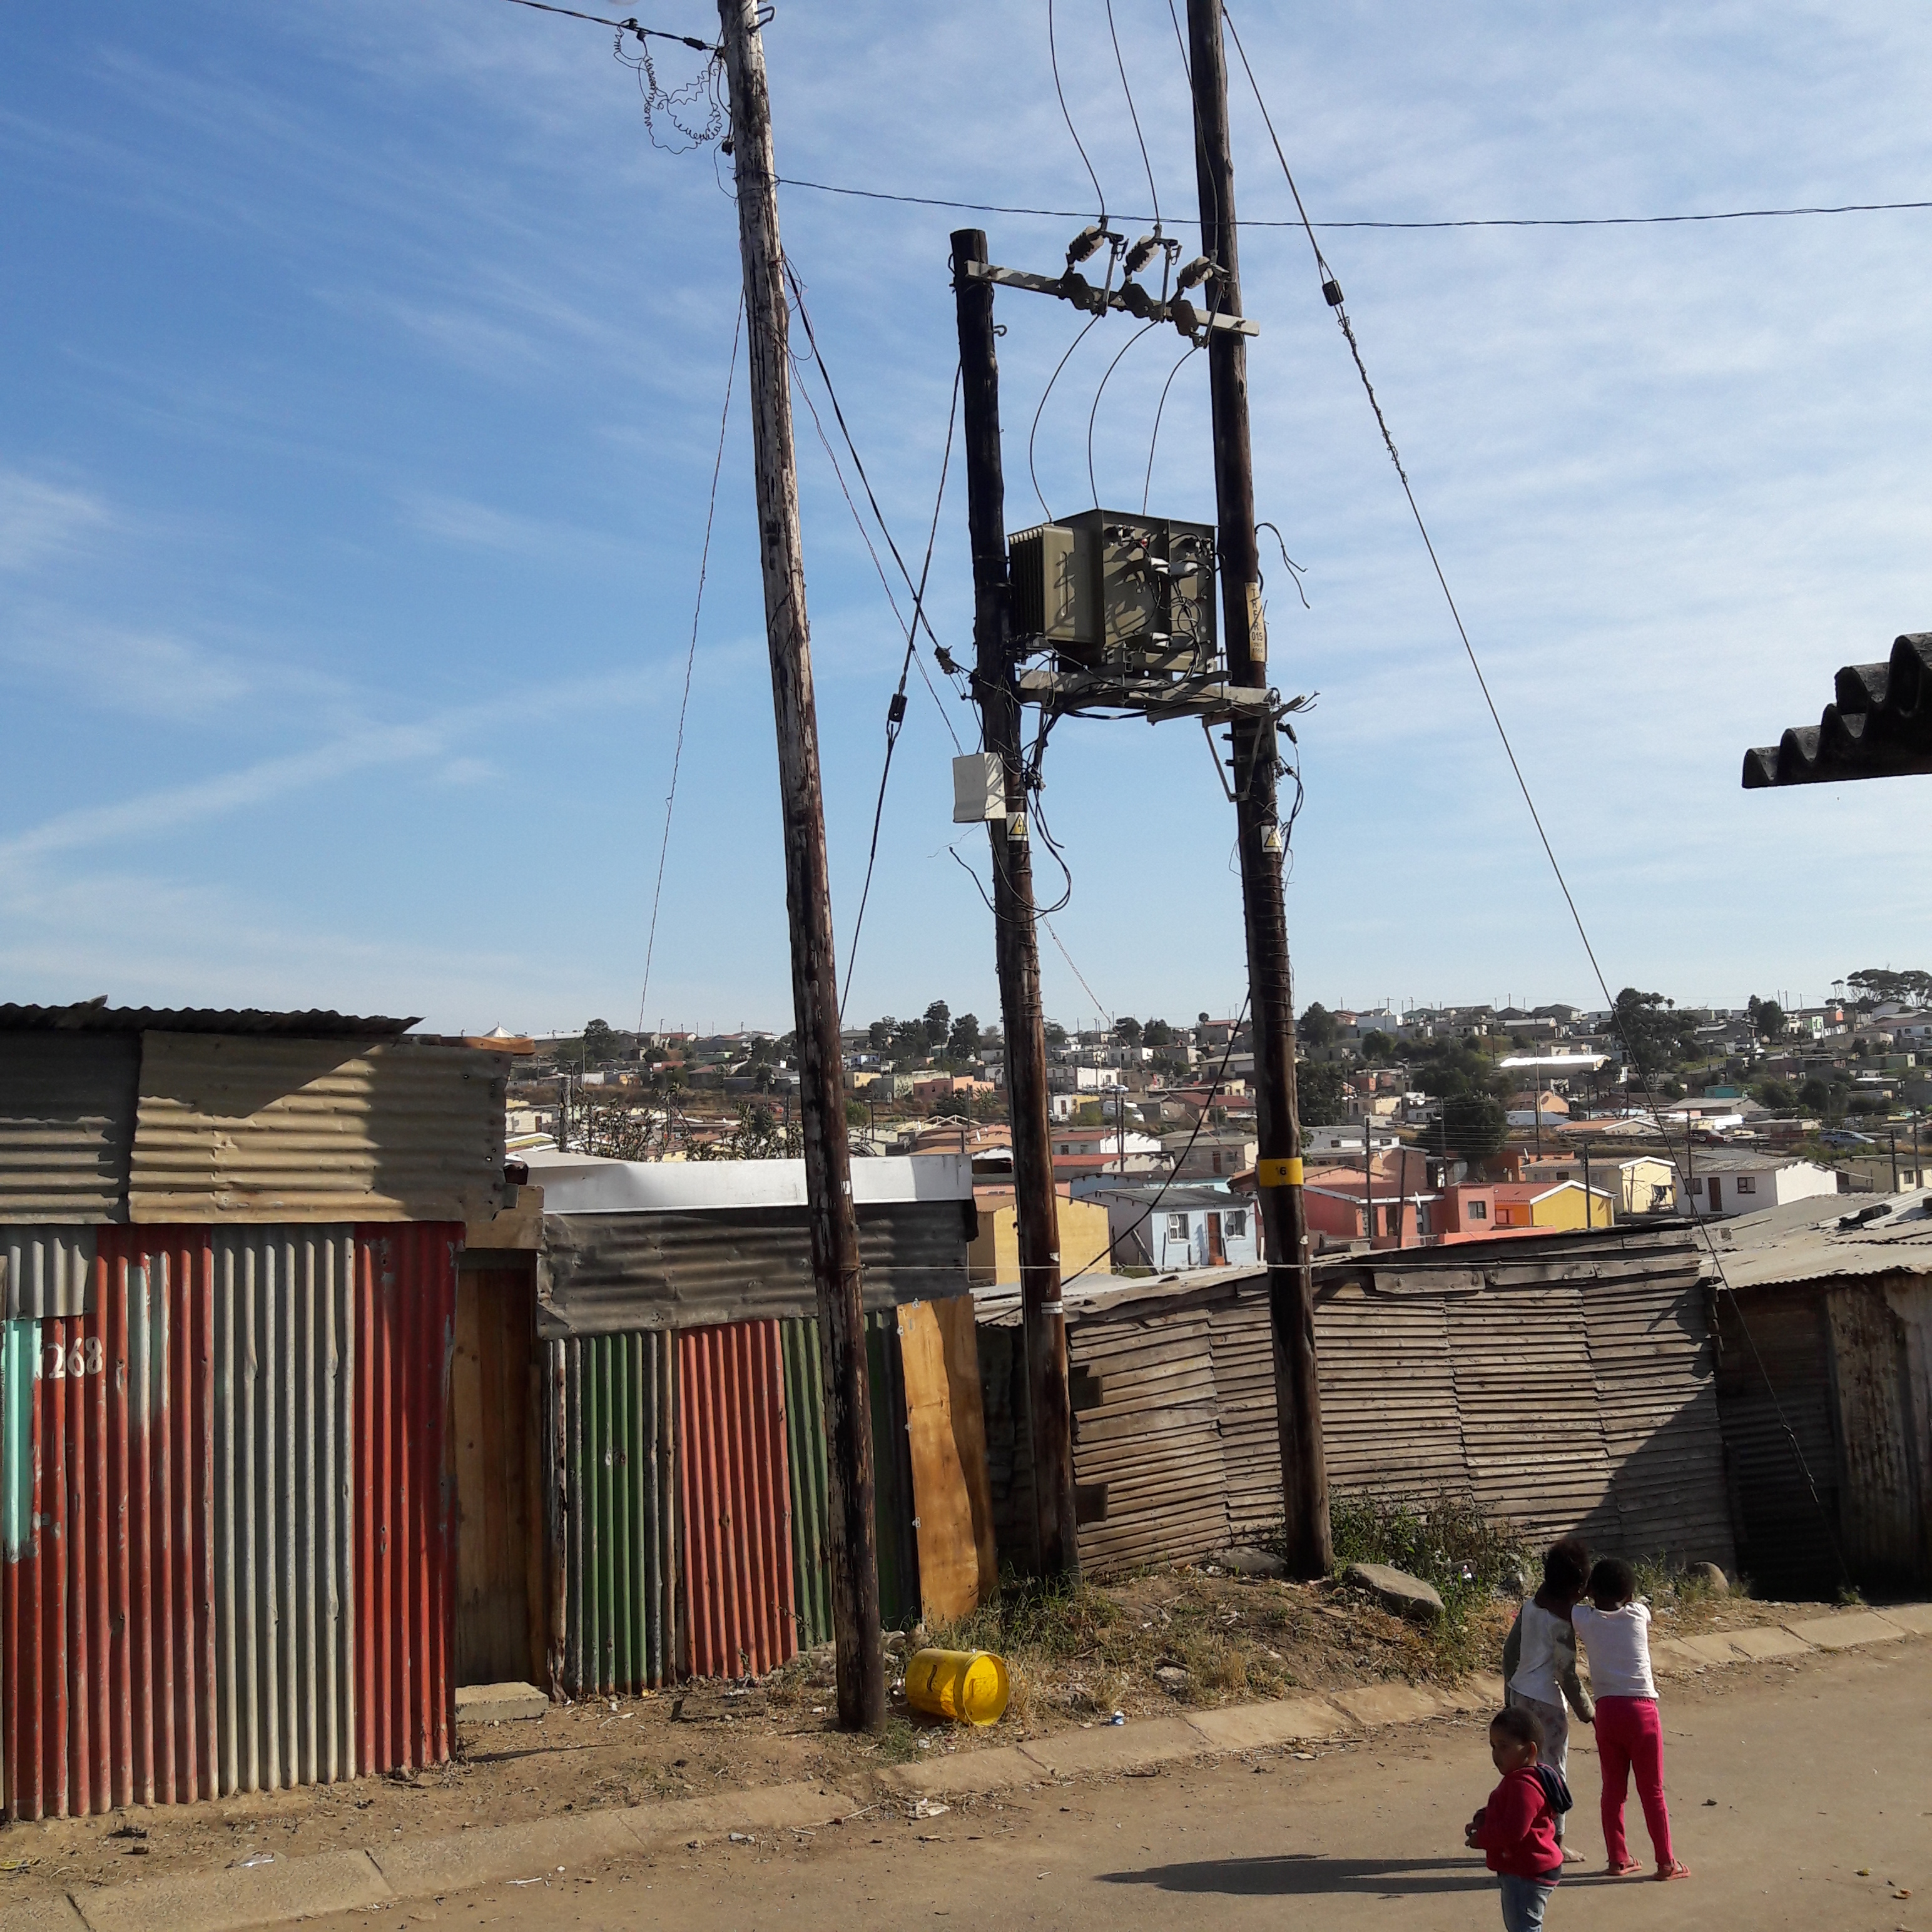 Illegal Electricity Connections Overloads New Duncan Village Electrical Wiring Interview Questions Photo Of Supply Transformer